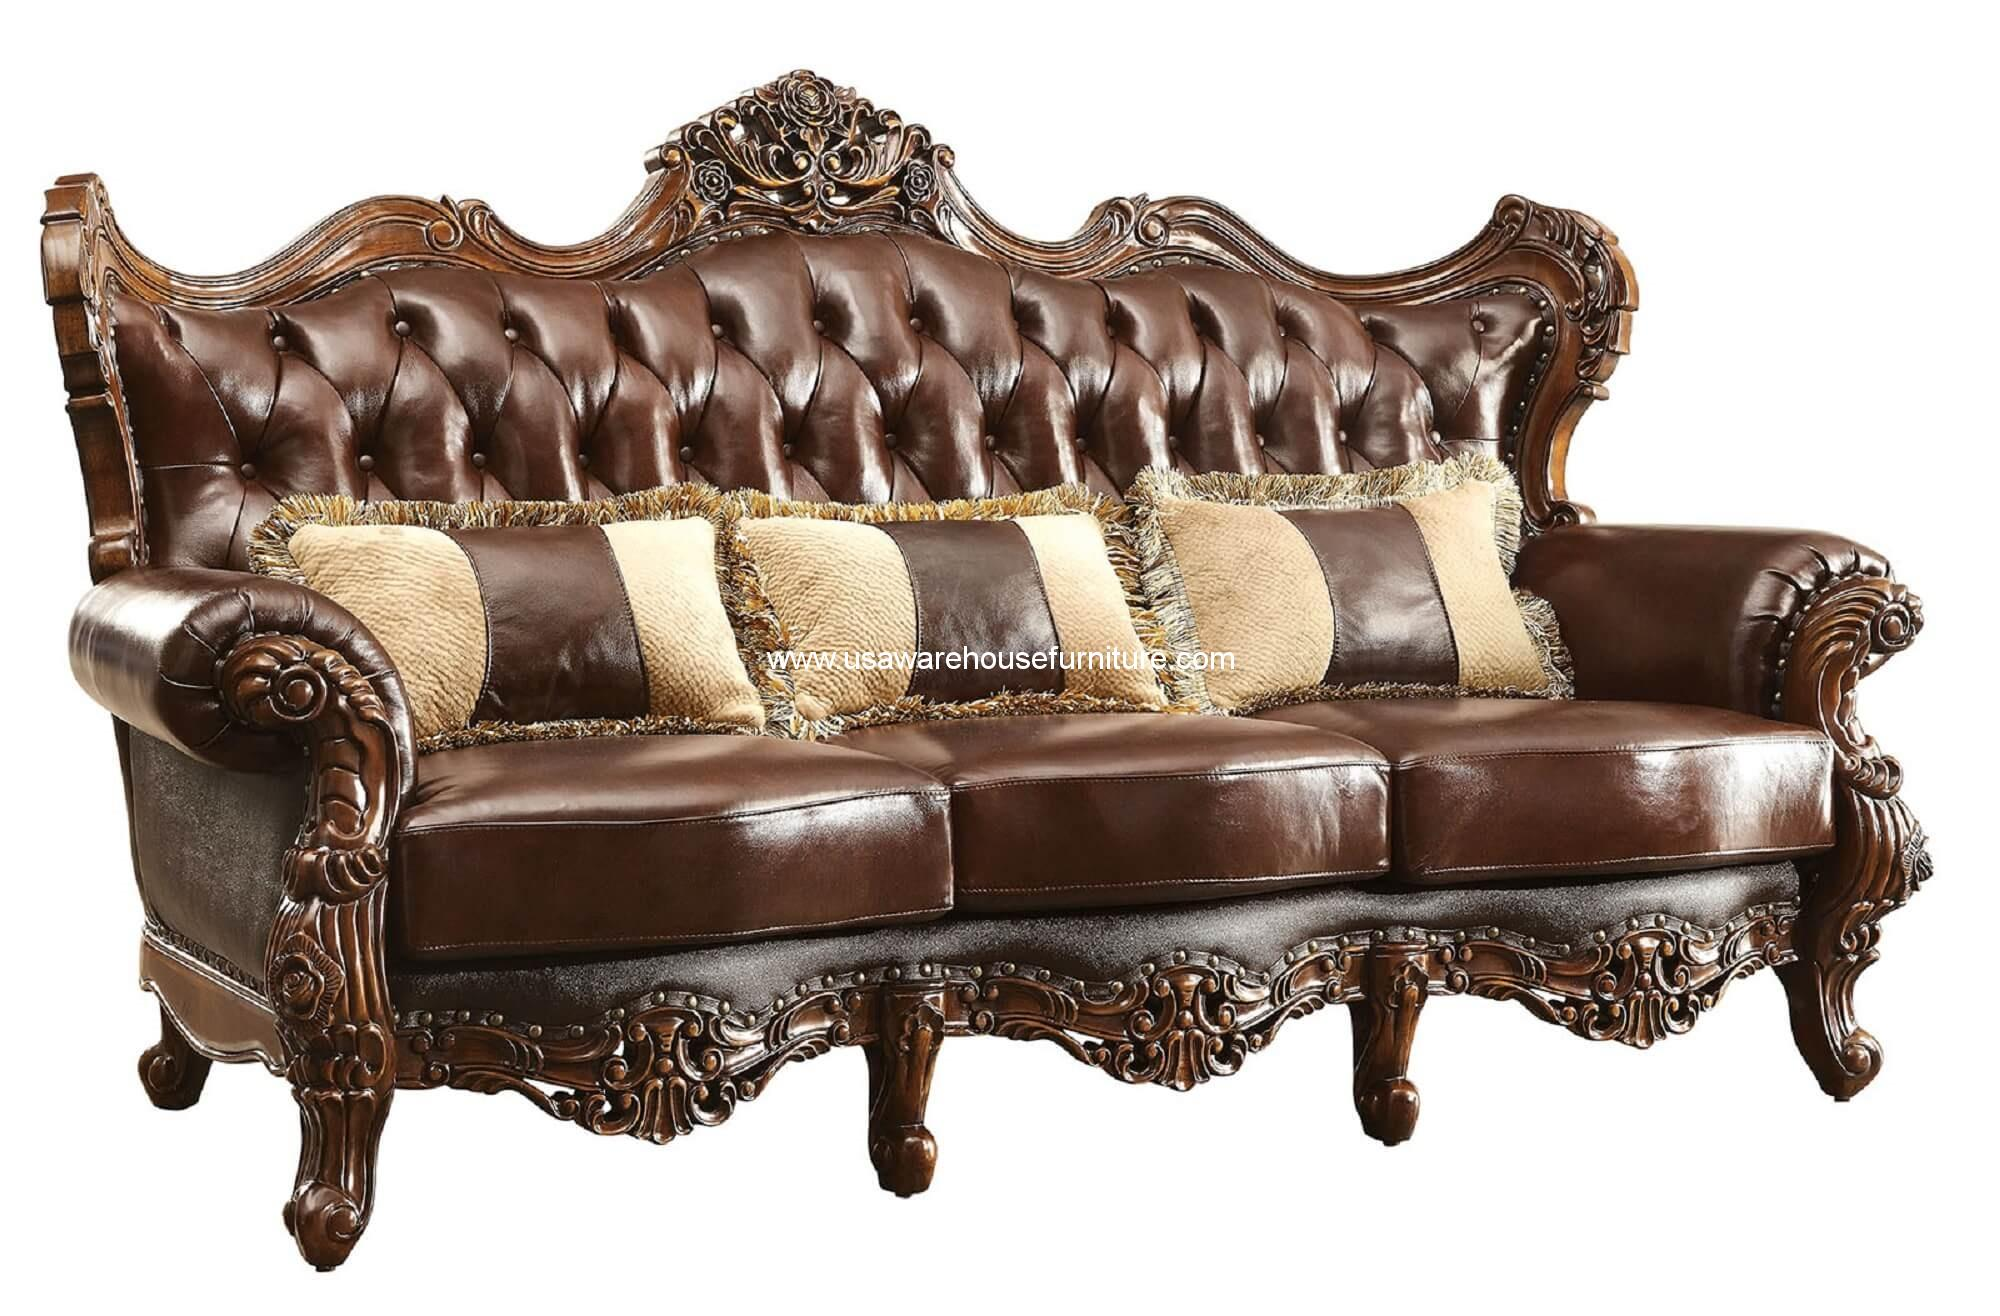 Wood Trim Sofas Furniture - Easy Home Decorating Ideas